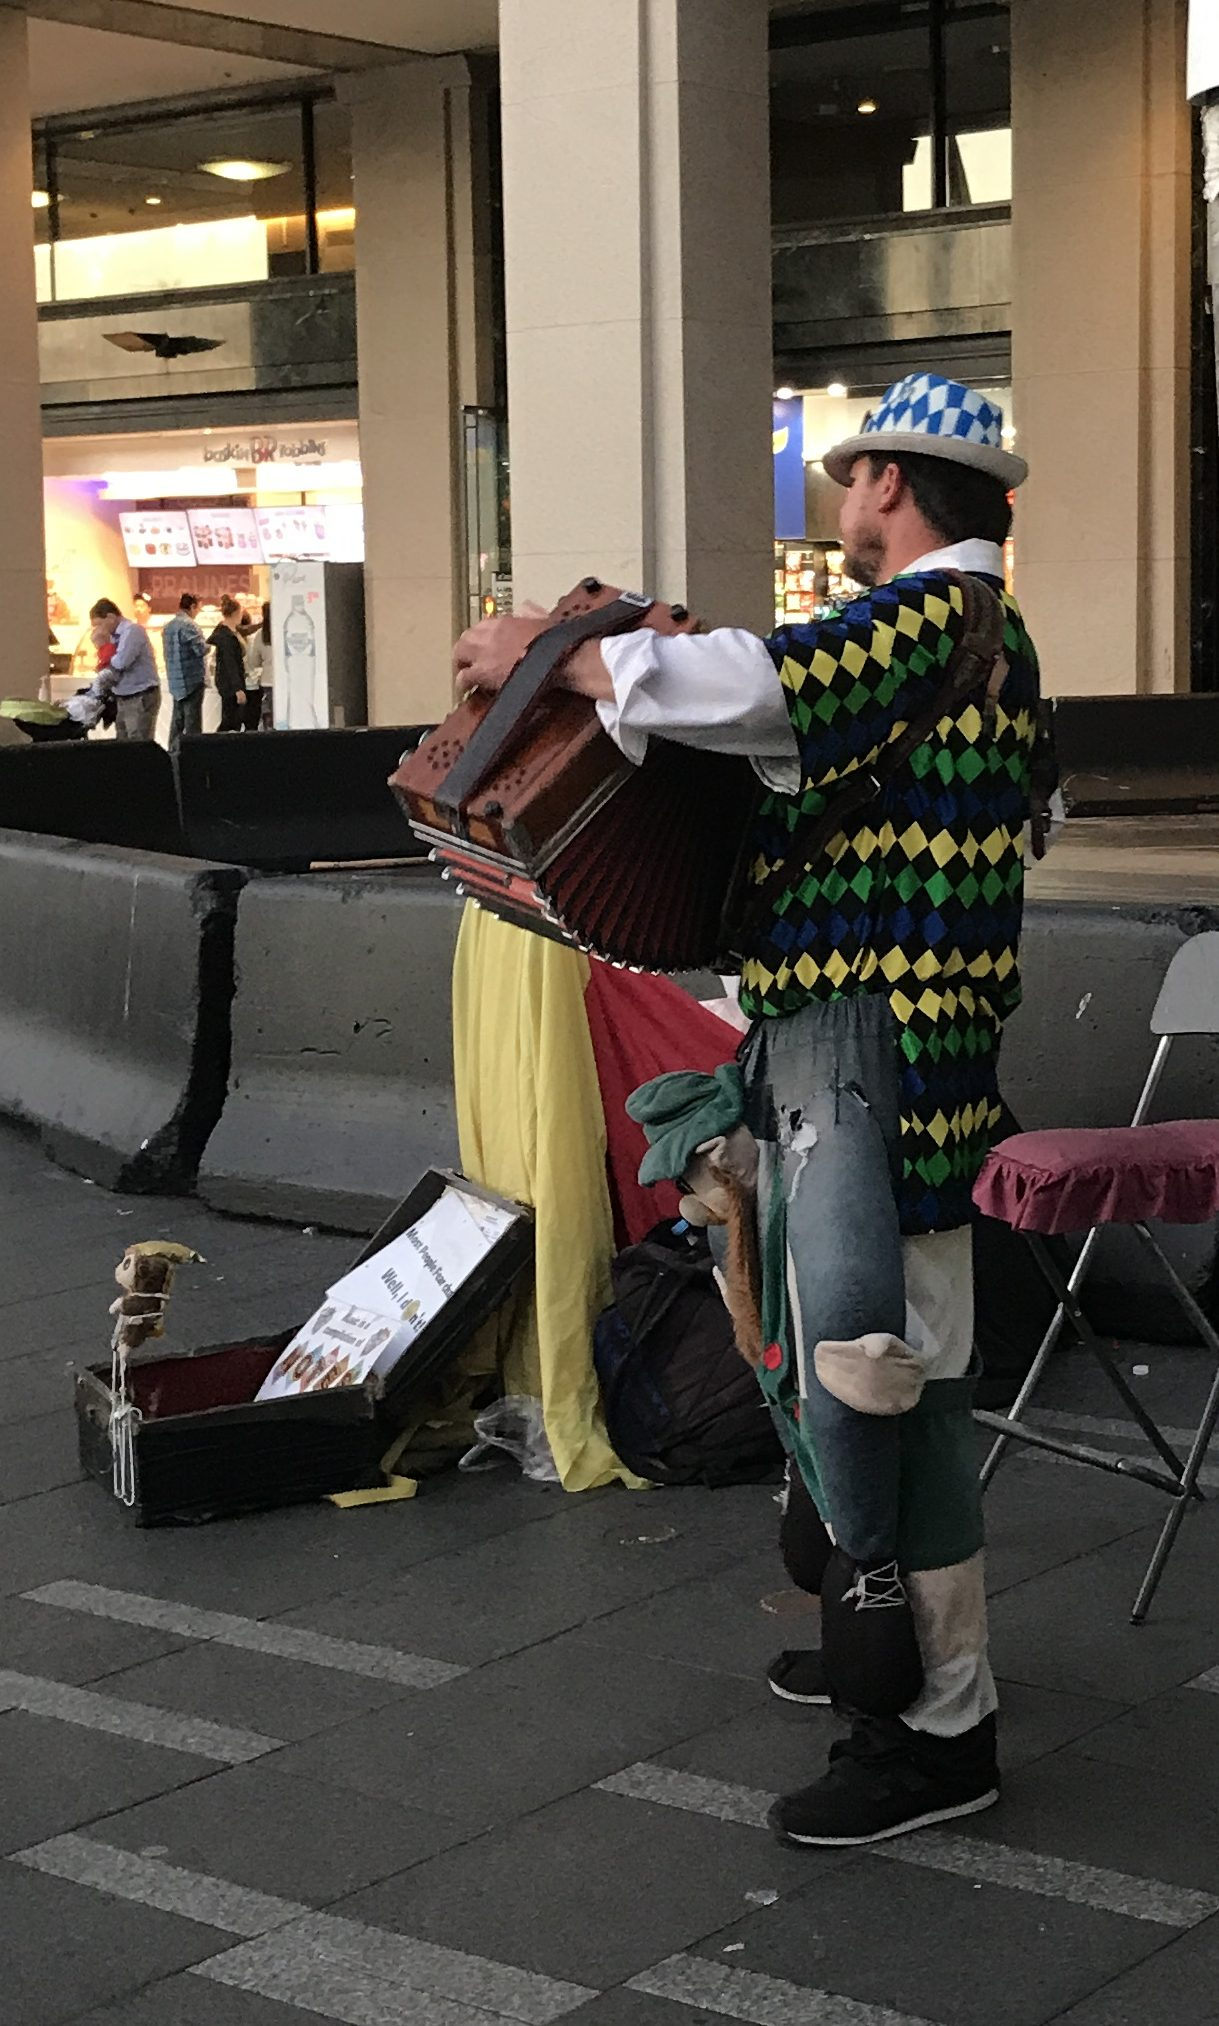 Accordion player in the Nordic zone